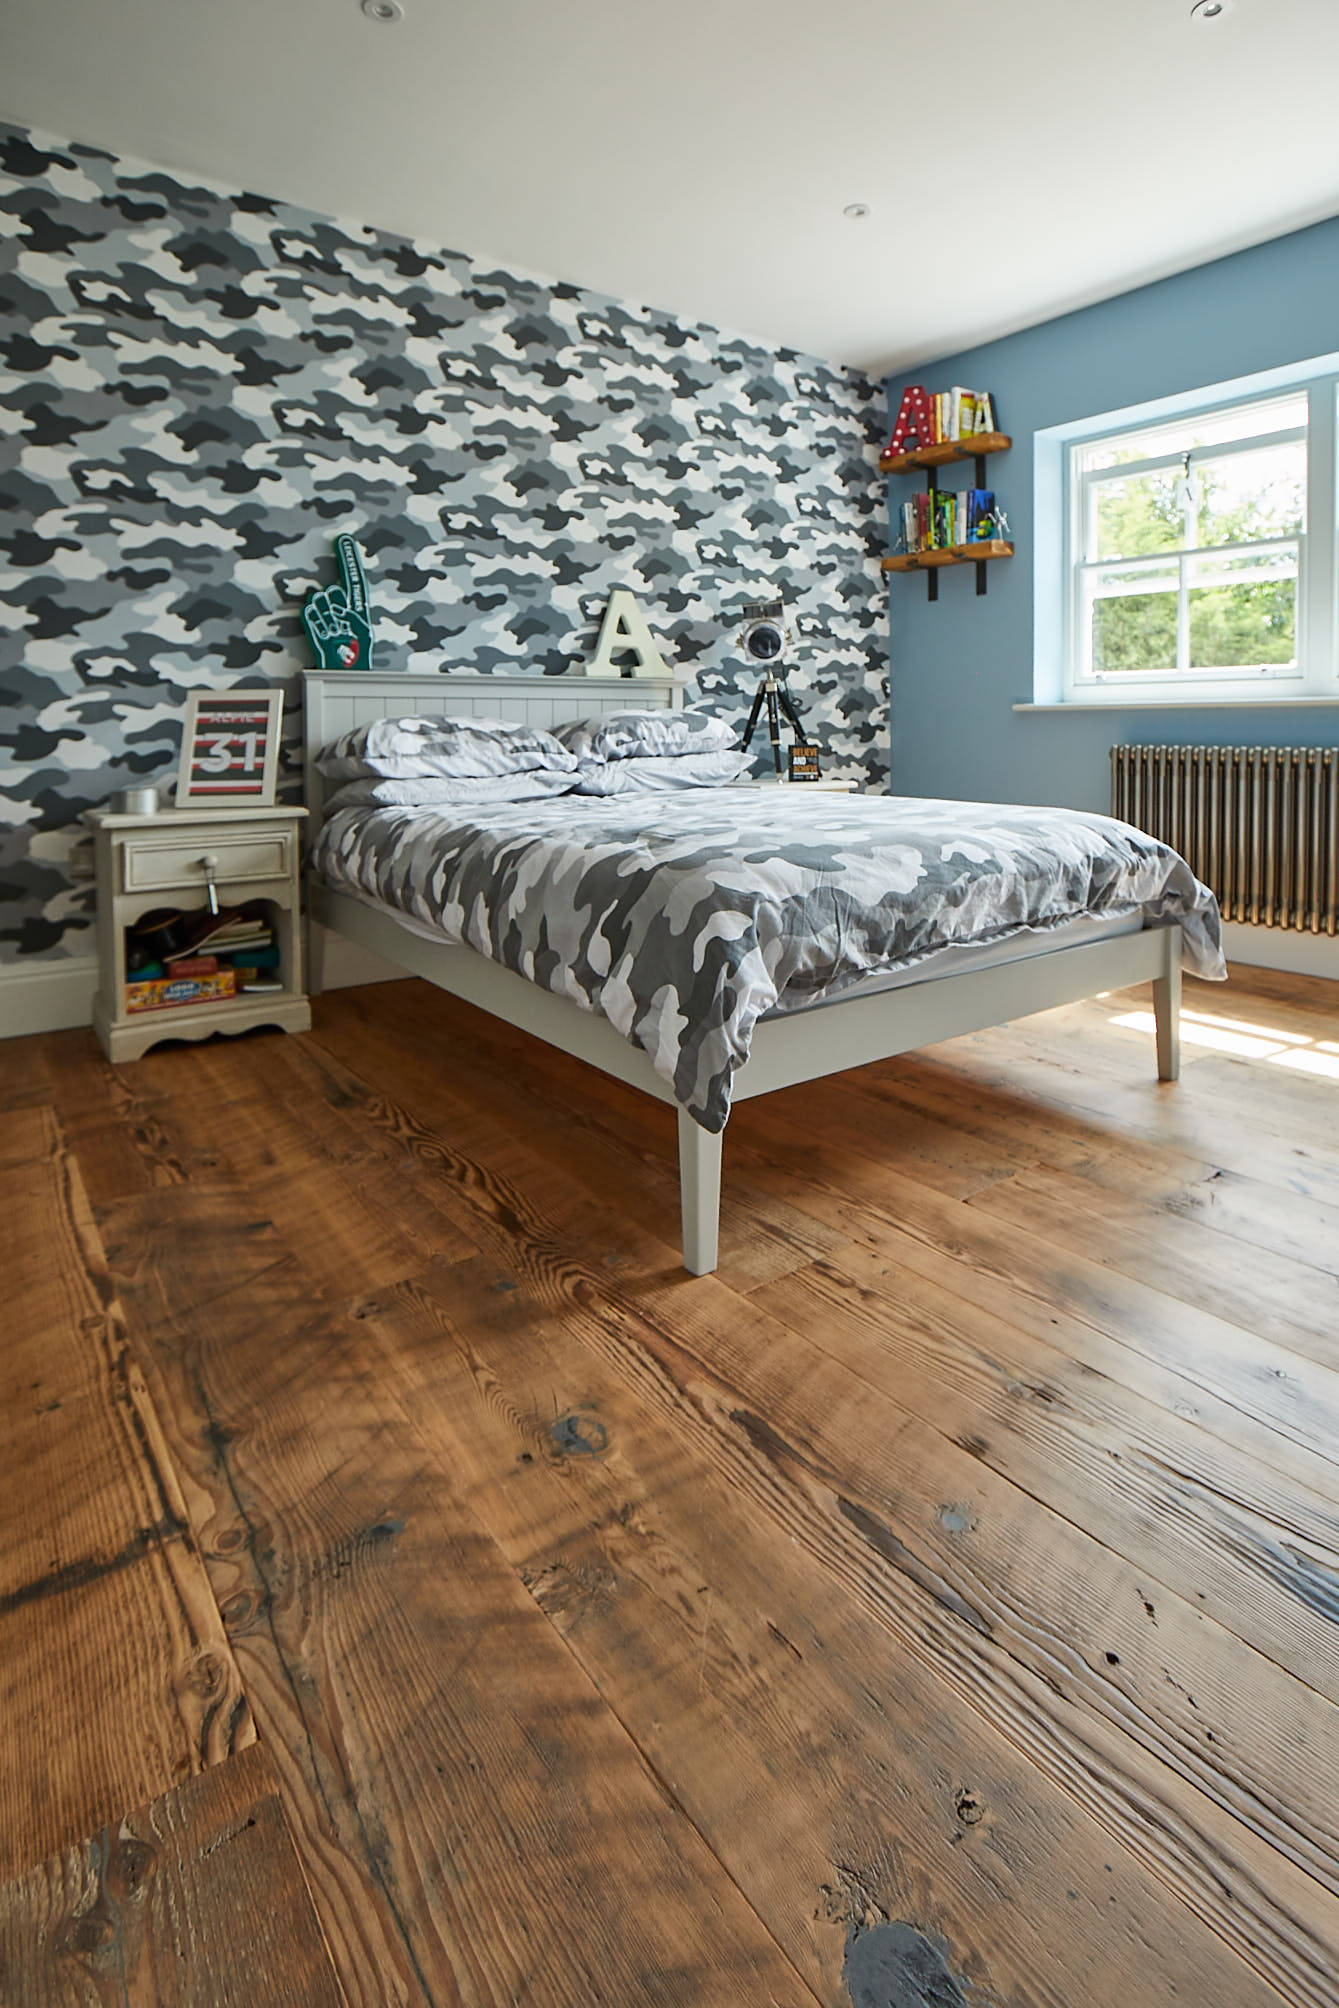 Rustic flooring with camouflage wallpaper